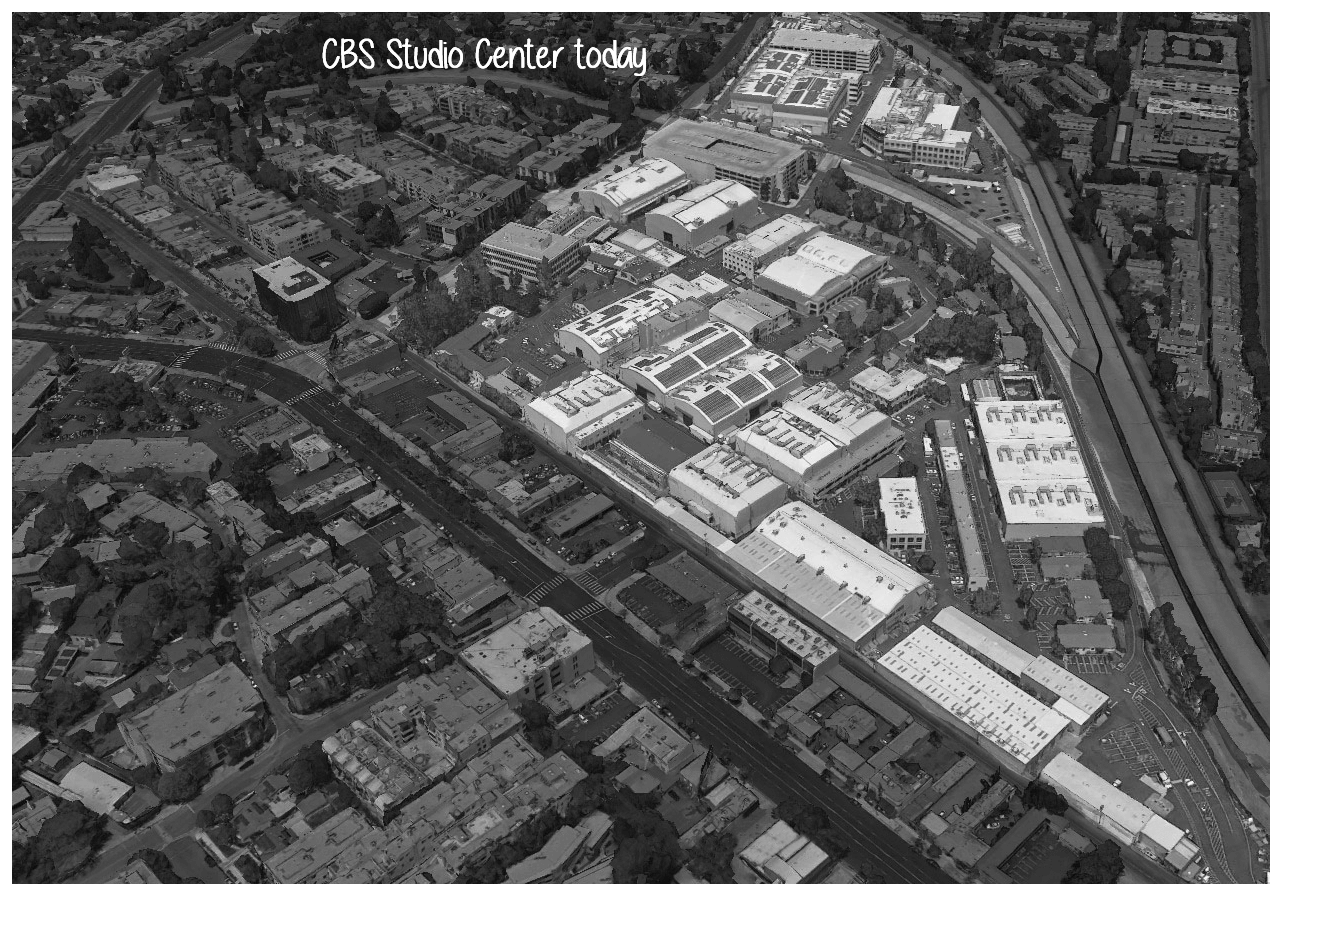 CBS Studio Center bird's eye